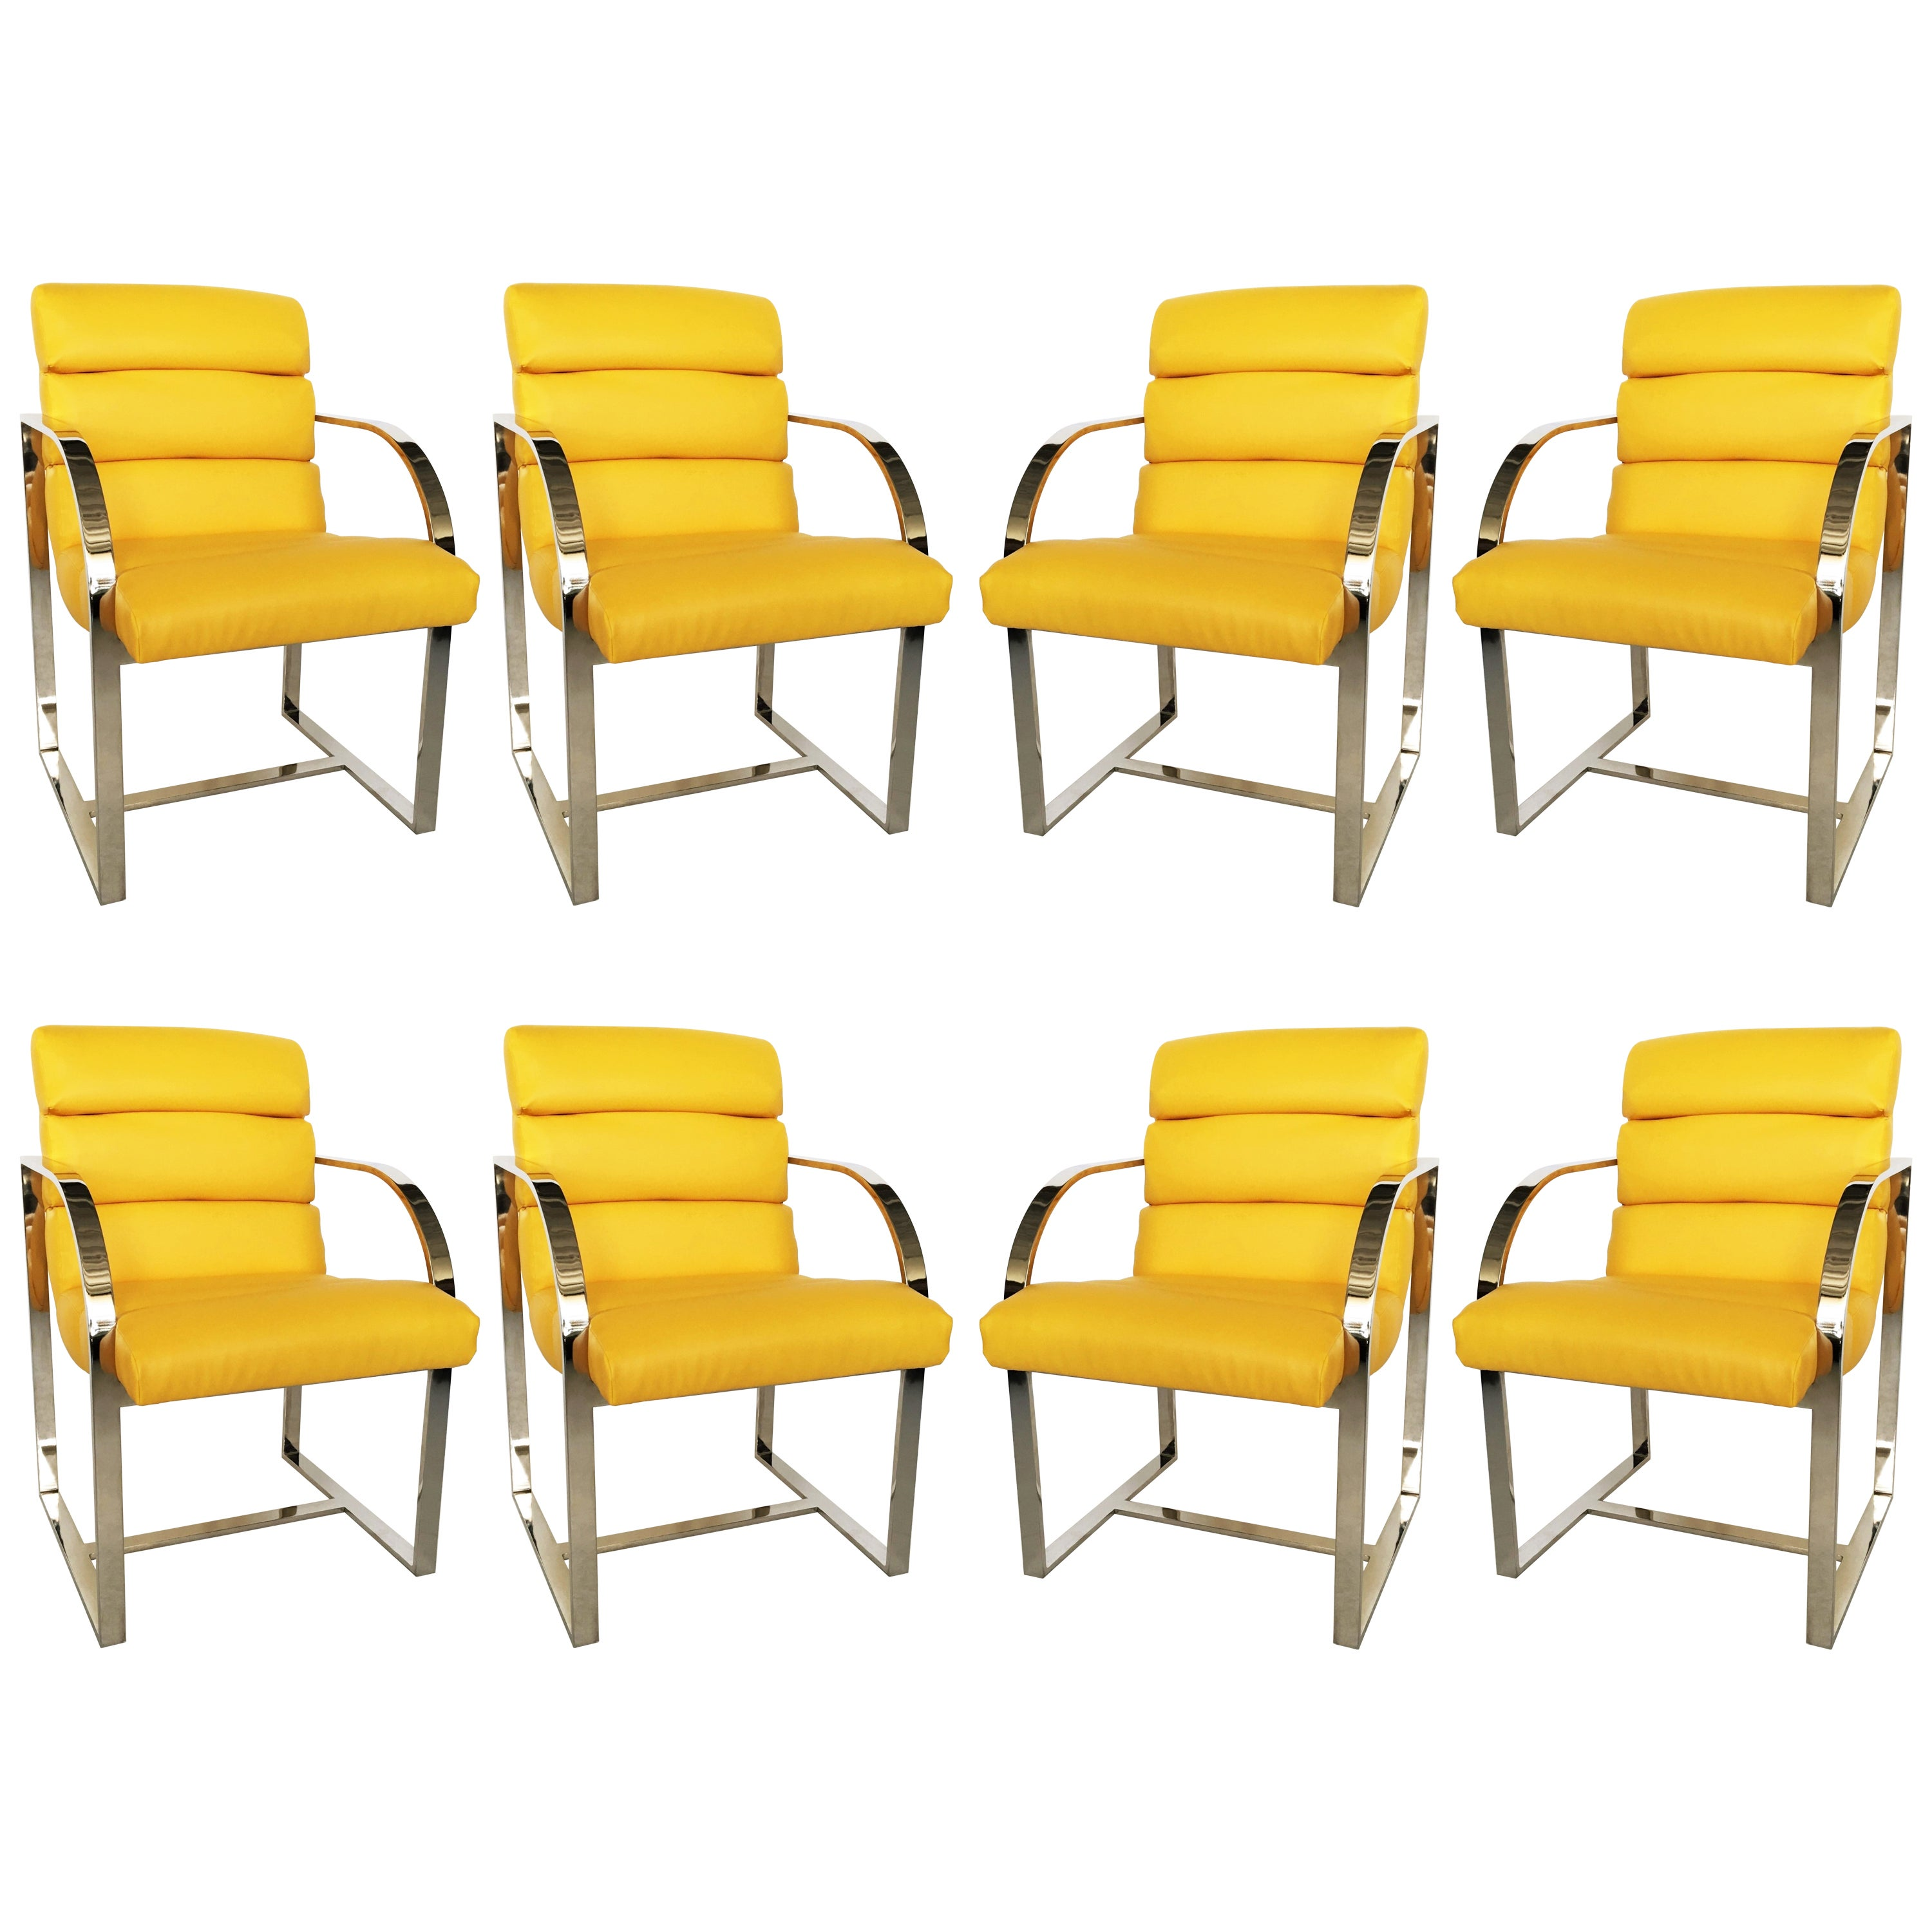 Eight Yellow and Chrome Dining Chairs by Milo Baughman for Thayer Coggin